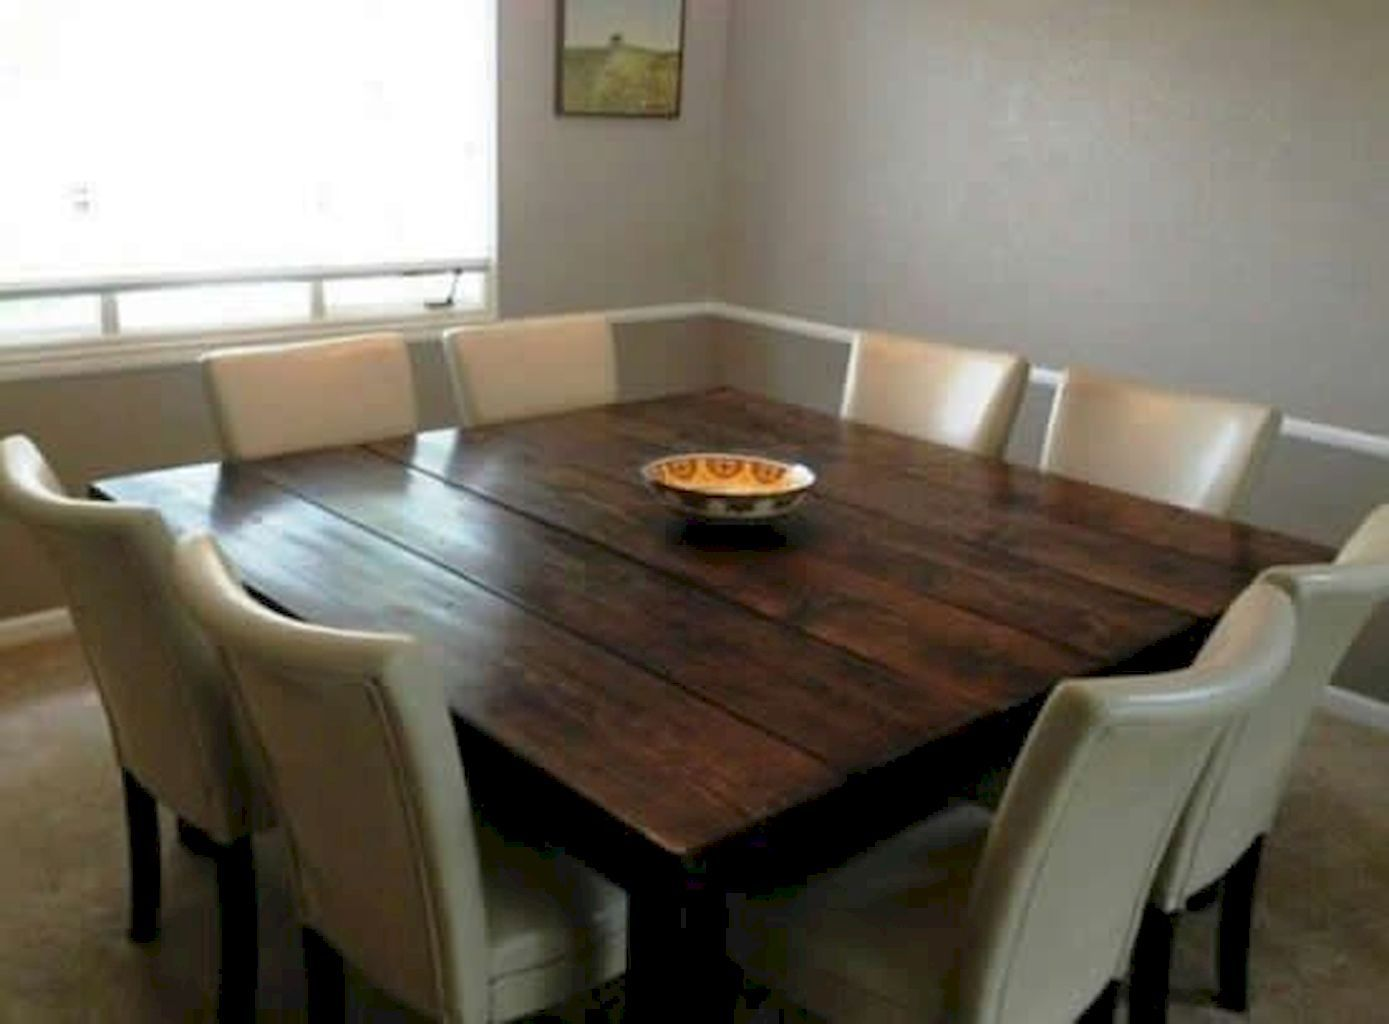 Enhance Dinning Room With Farmhouse Table Home To Z Square Dining Room Table Square Kitchen Tables Square Dining Tables